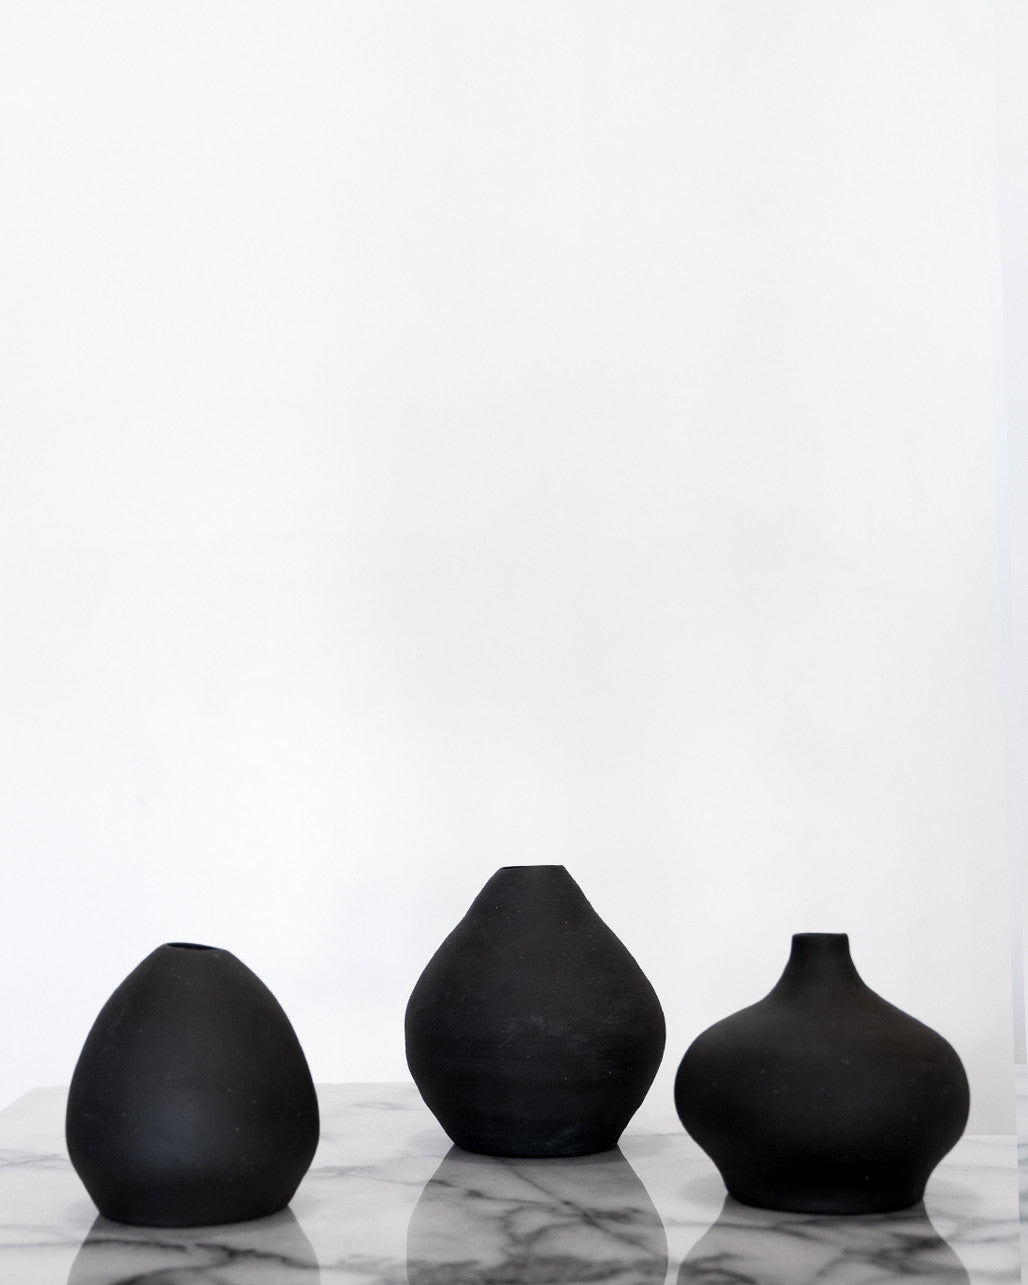 black ceramic vases